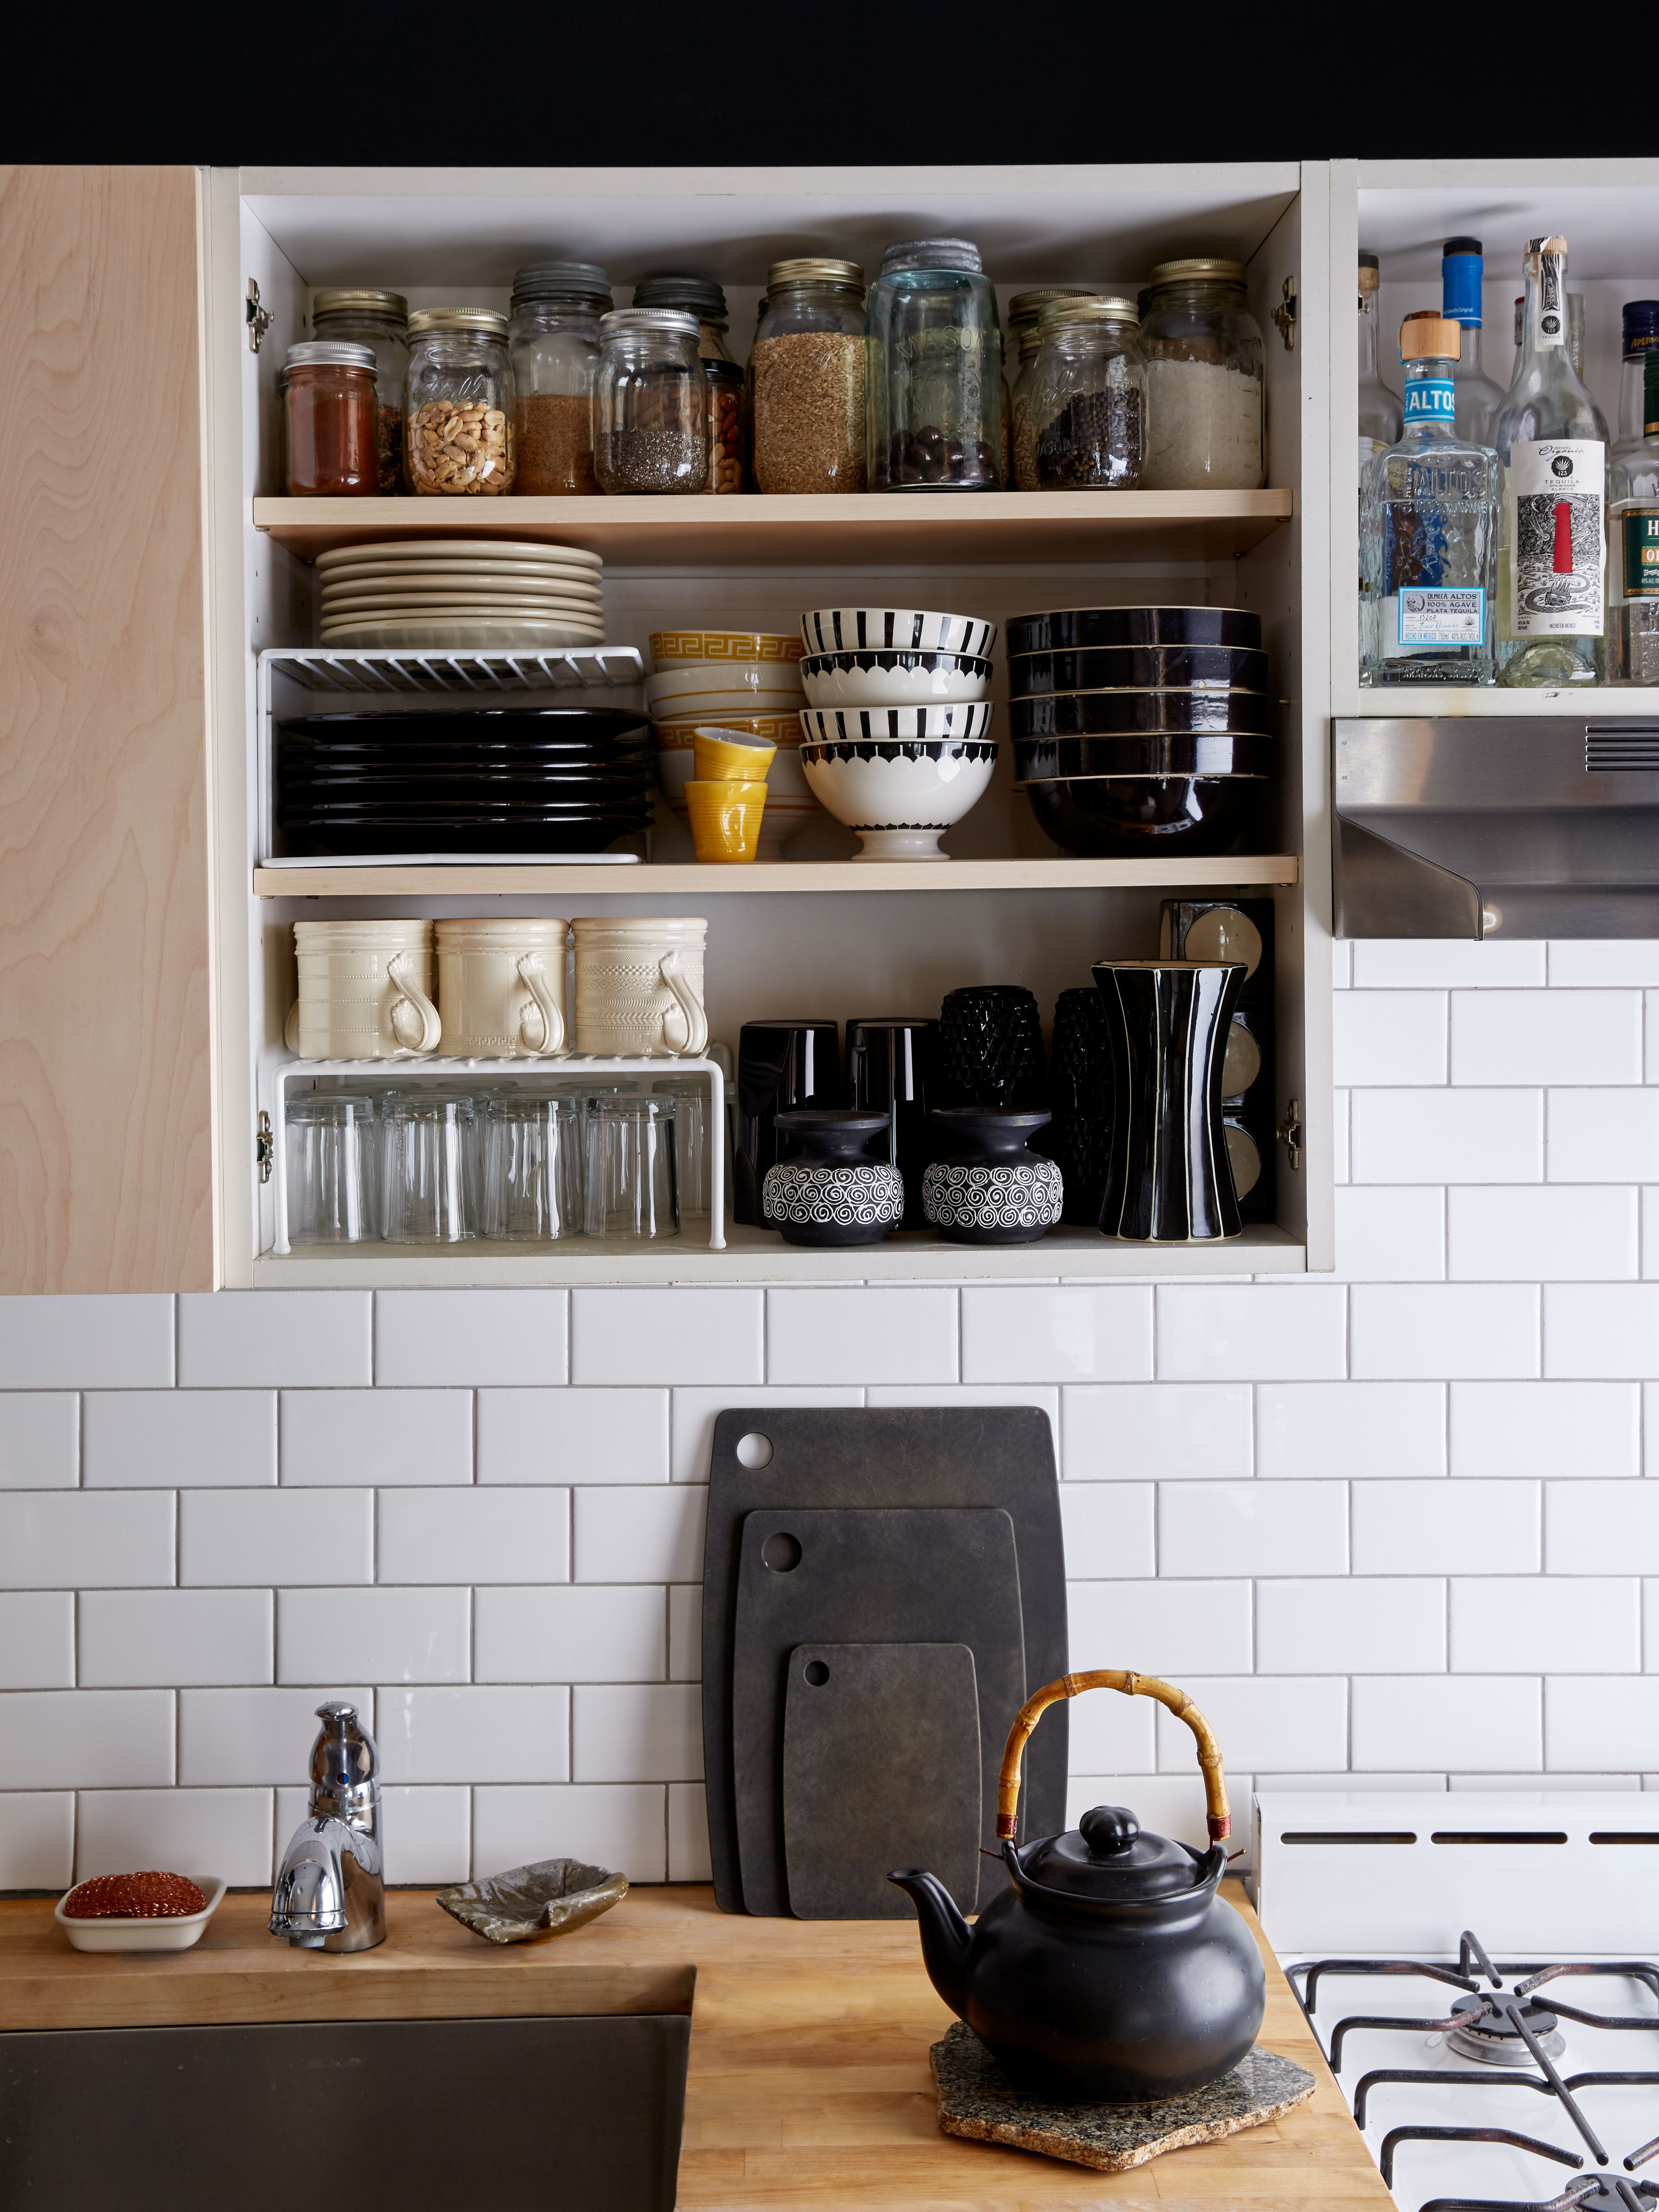 Small Space Solutions 17 Affordable Tips From An Nyc Creative Couple Remodelista Classy Kitchen Kitchen Cabinet Design Open Kitchen Shelves